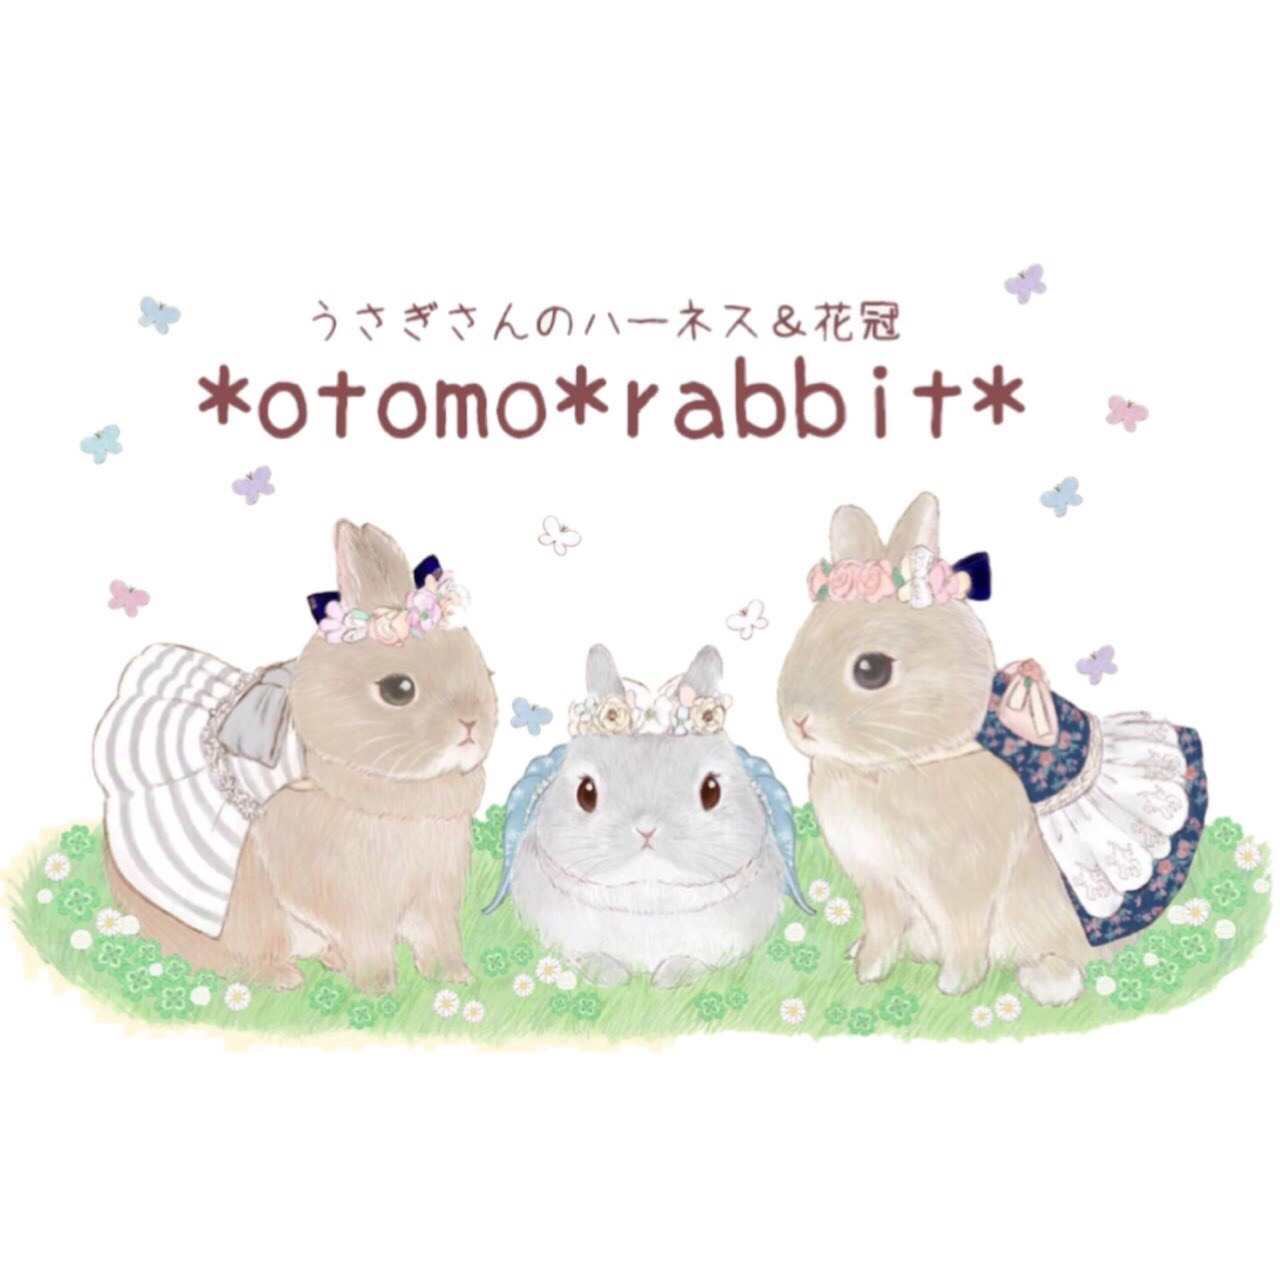 *otomo*rabbit*